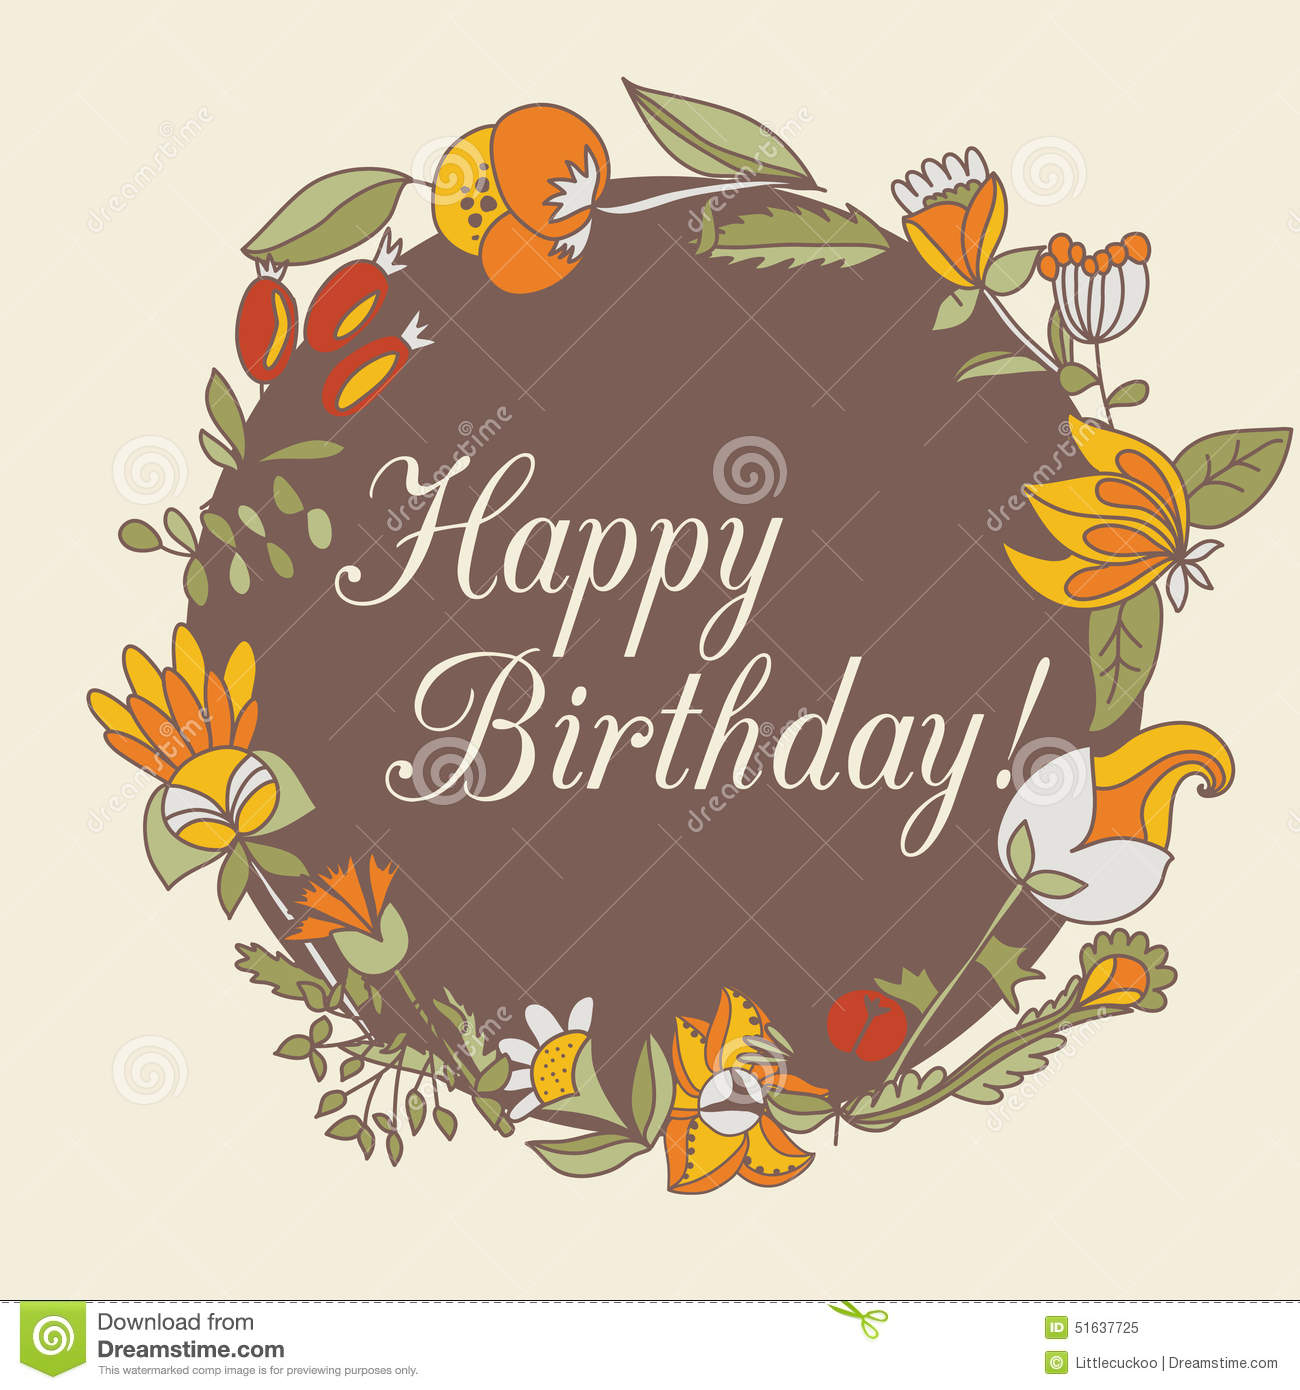 Happy birthday greeting card circle floral frame stock vector happy birthday greeting card circle floral frame bookmarktalkfo Choice Image